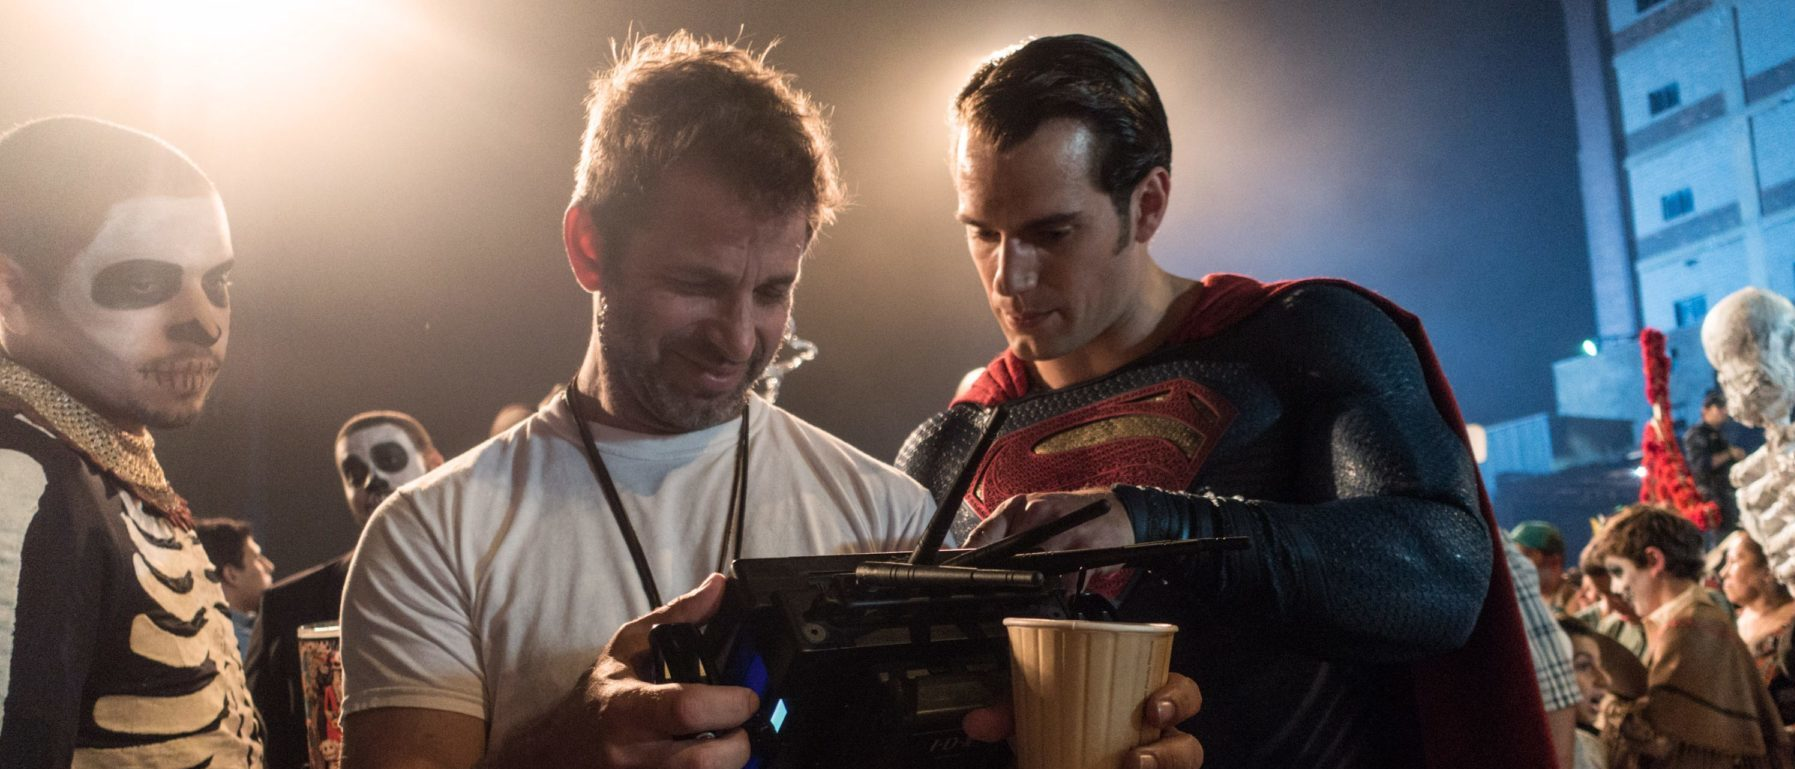 Zack Snyder directing Batman v Superman